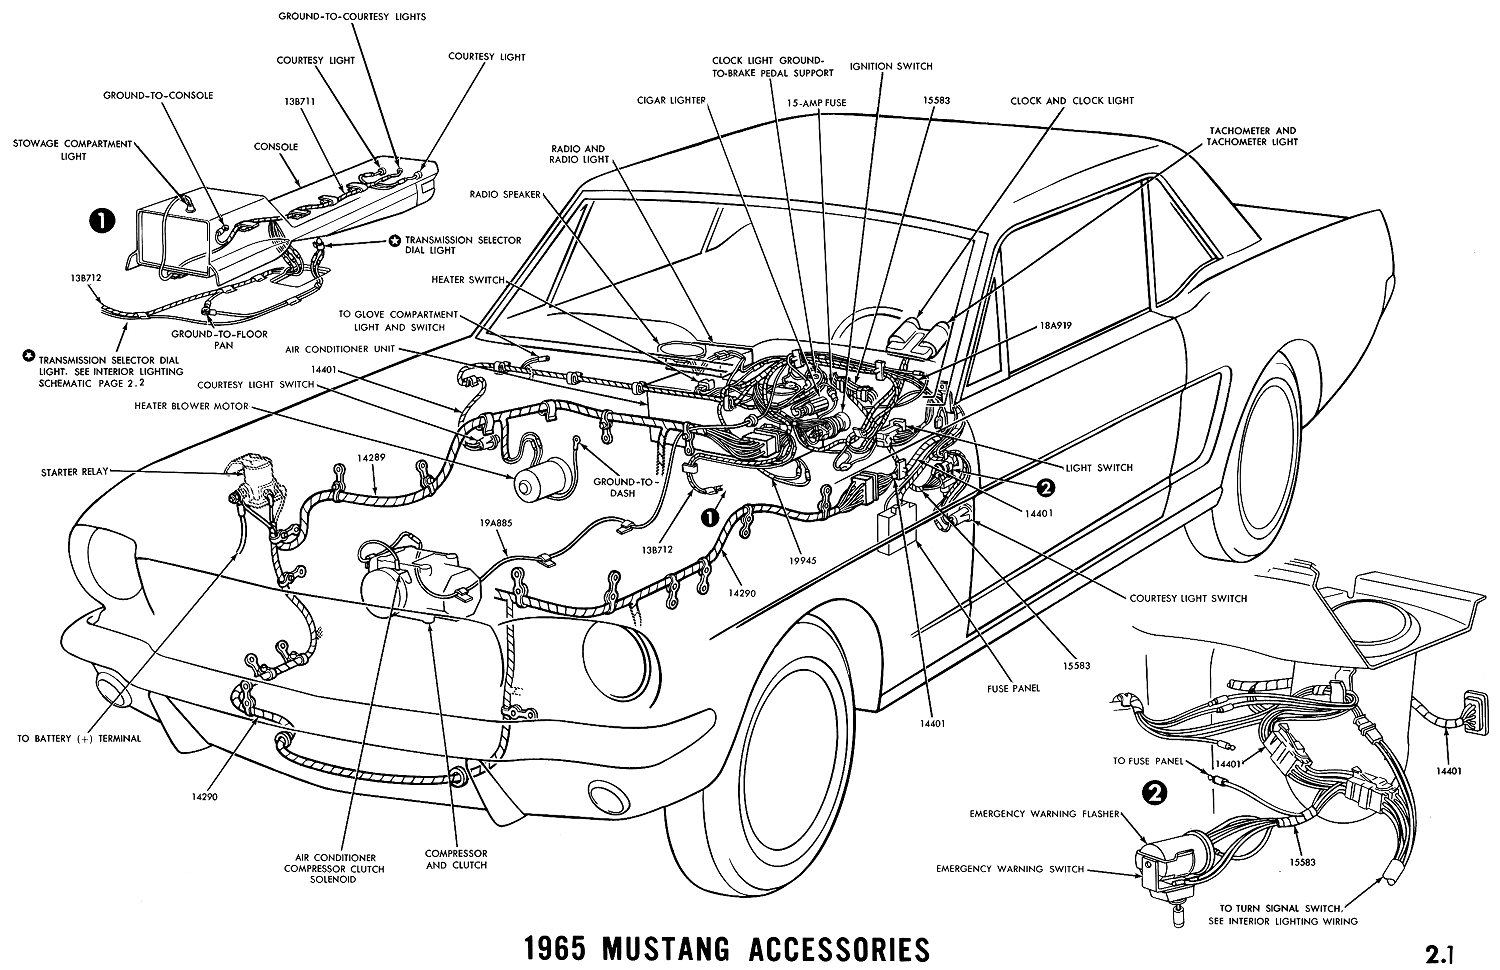 1965 Mustang Aftermarket Stereo Wiring Diagram Data Diagrams Audio Average Joe Restoration Rh Averagejoerestoration Com 2009 Nissan Titan Car Colors